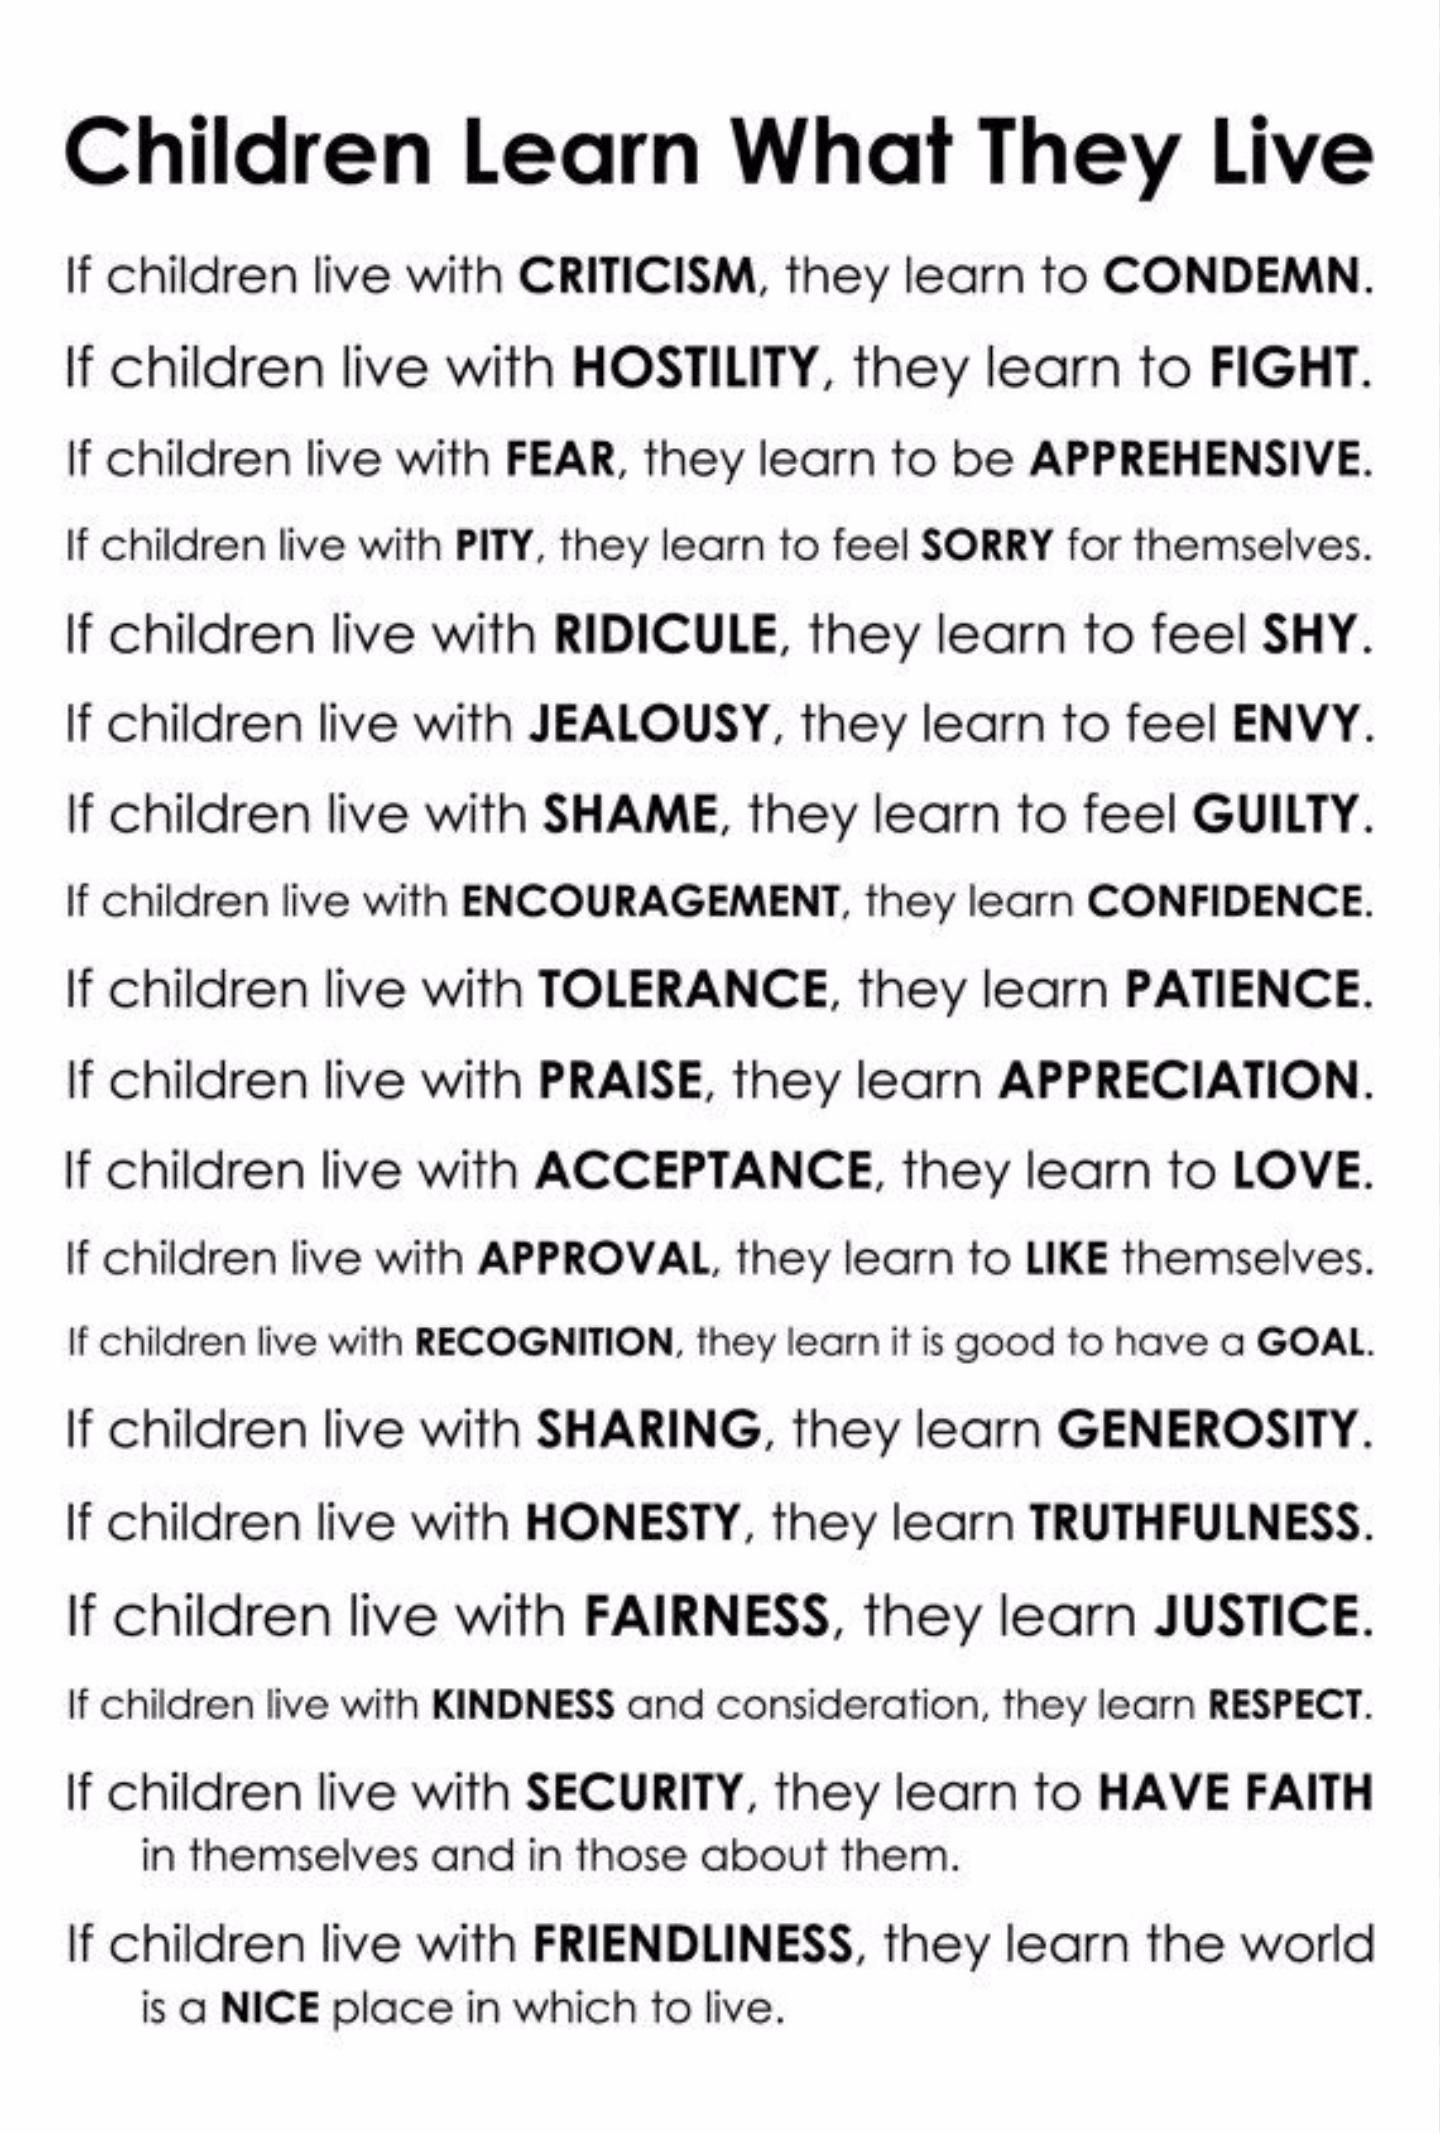 [IMAGE] Every parent should see this.